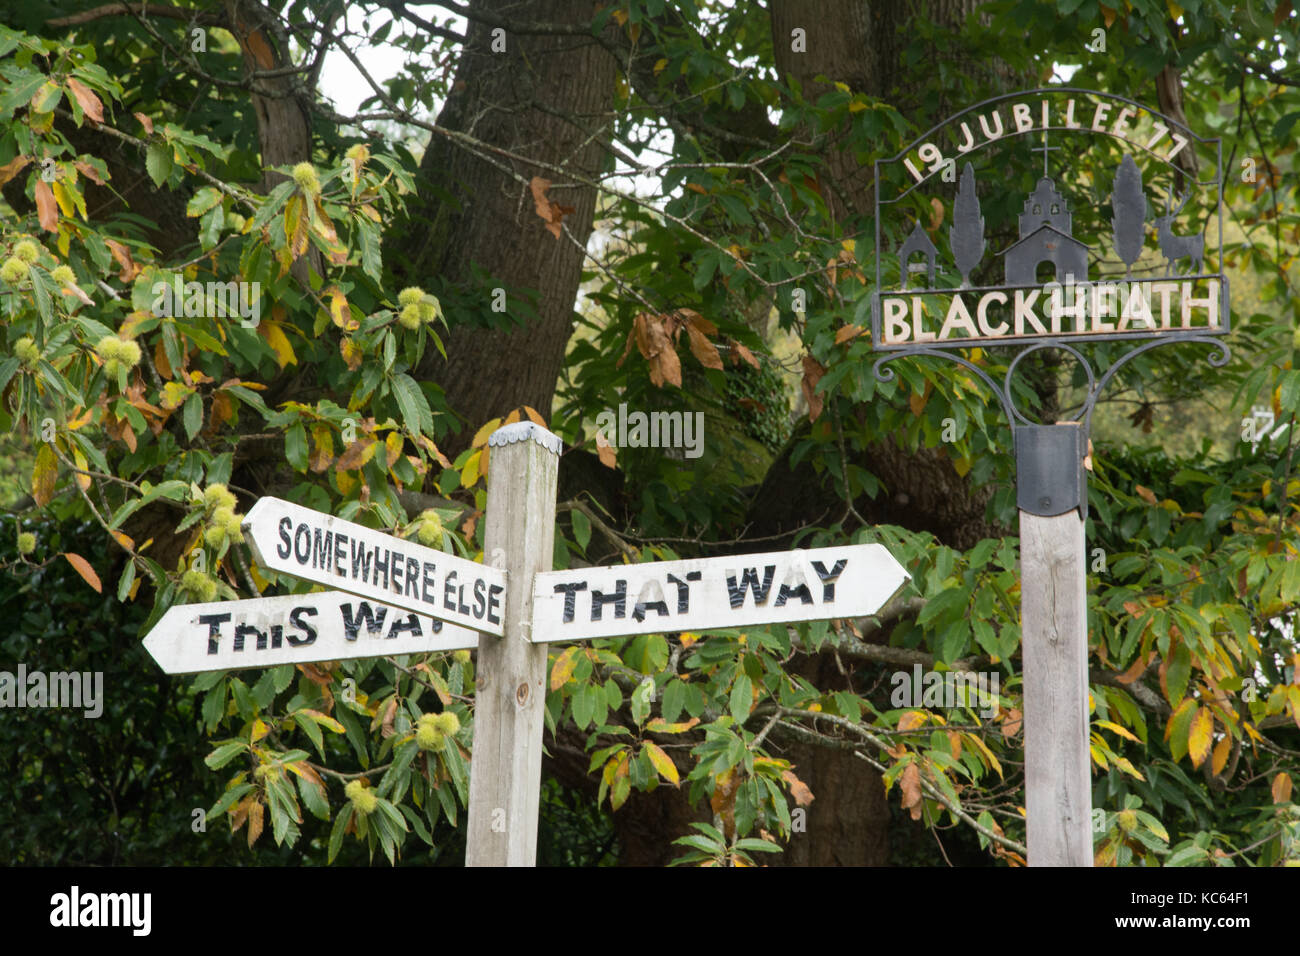 humorous-signpost-in-blackheath-village-surrey-uk-KC64F1.jpg